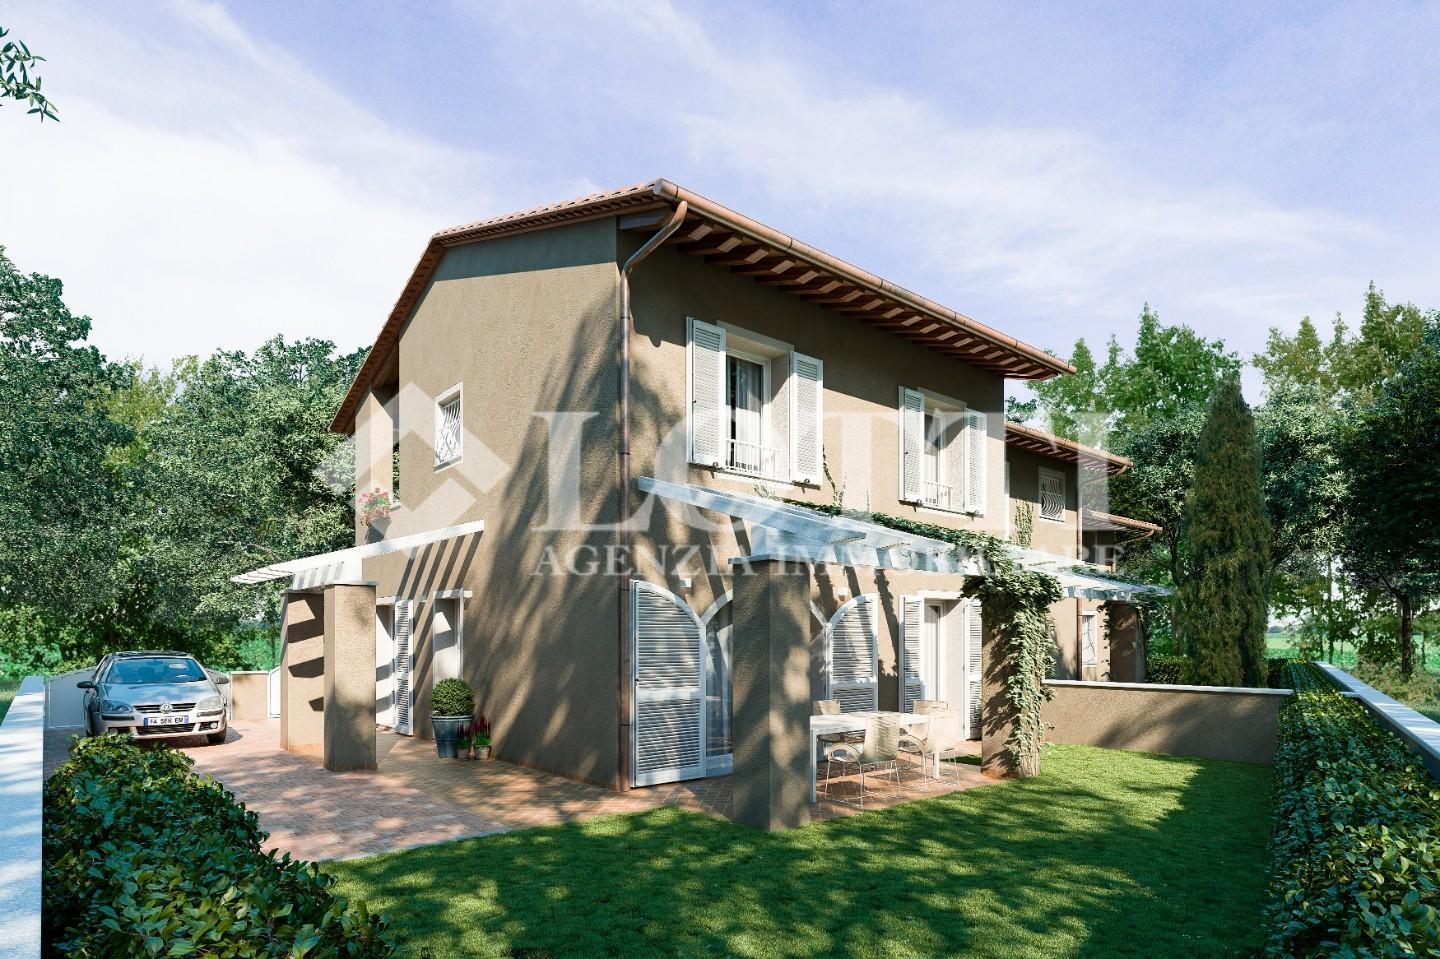 Semi-detached house for sale in Bientina (PI)